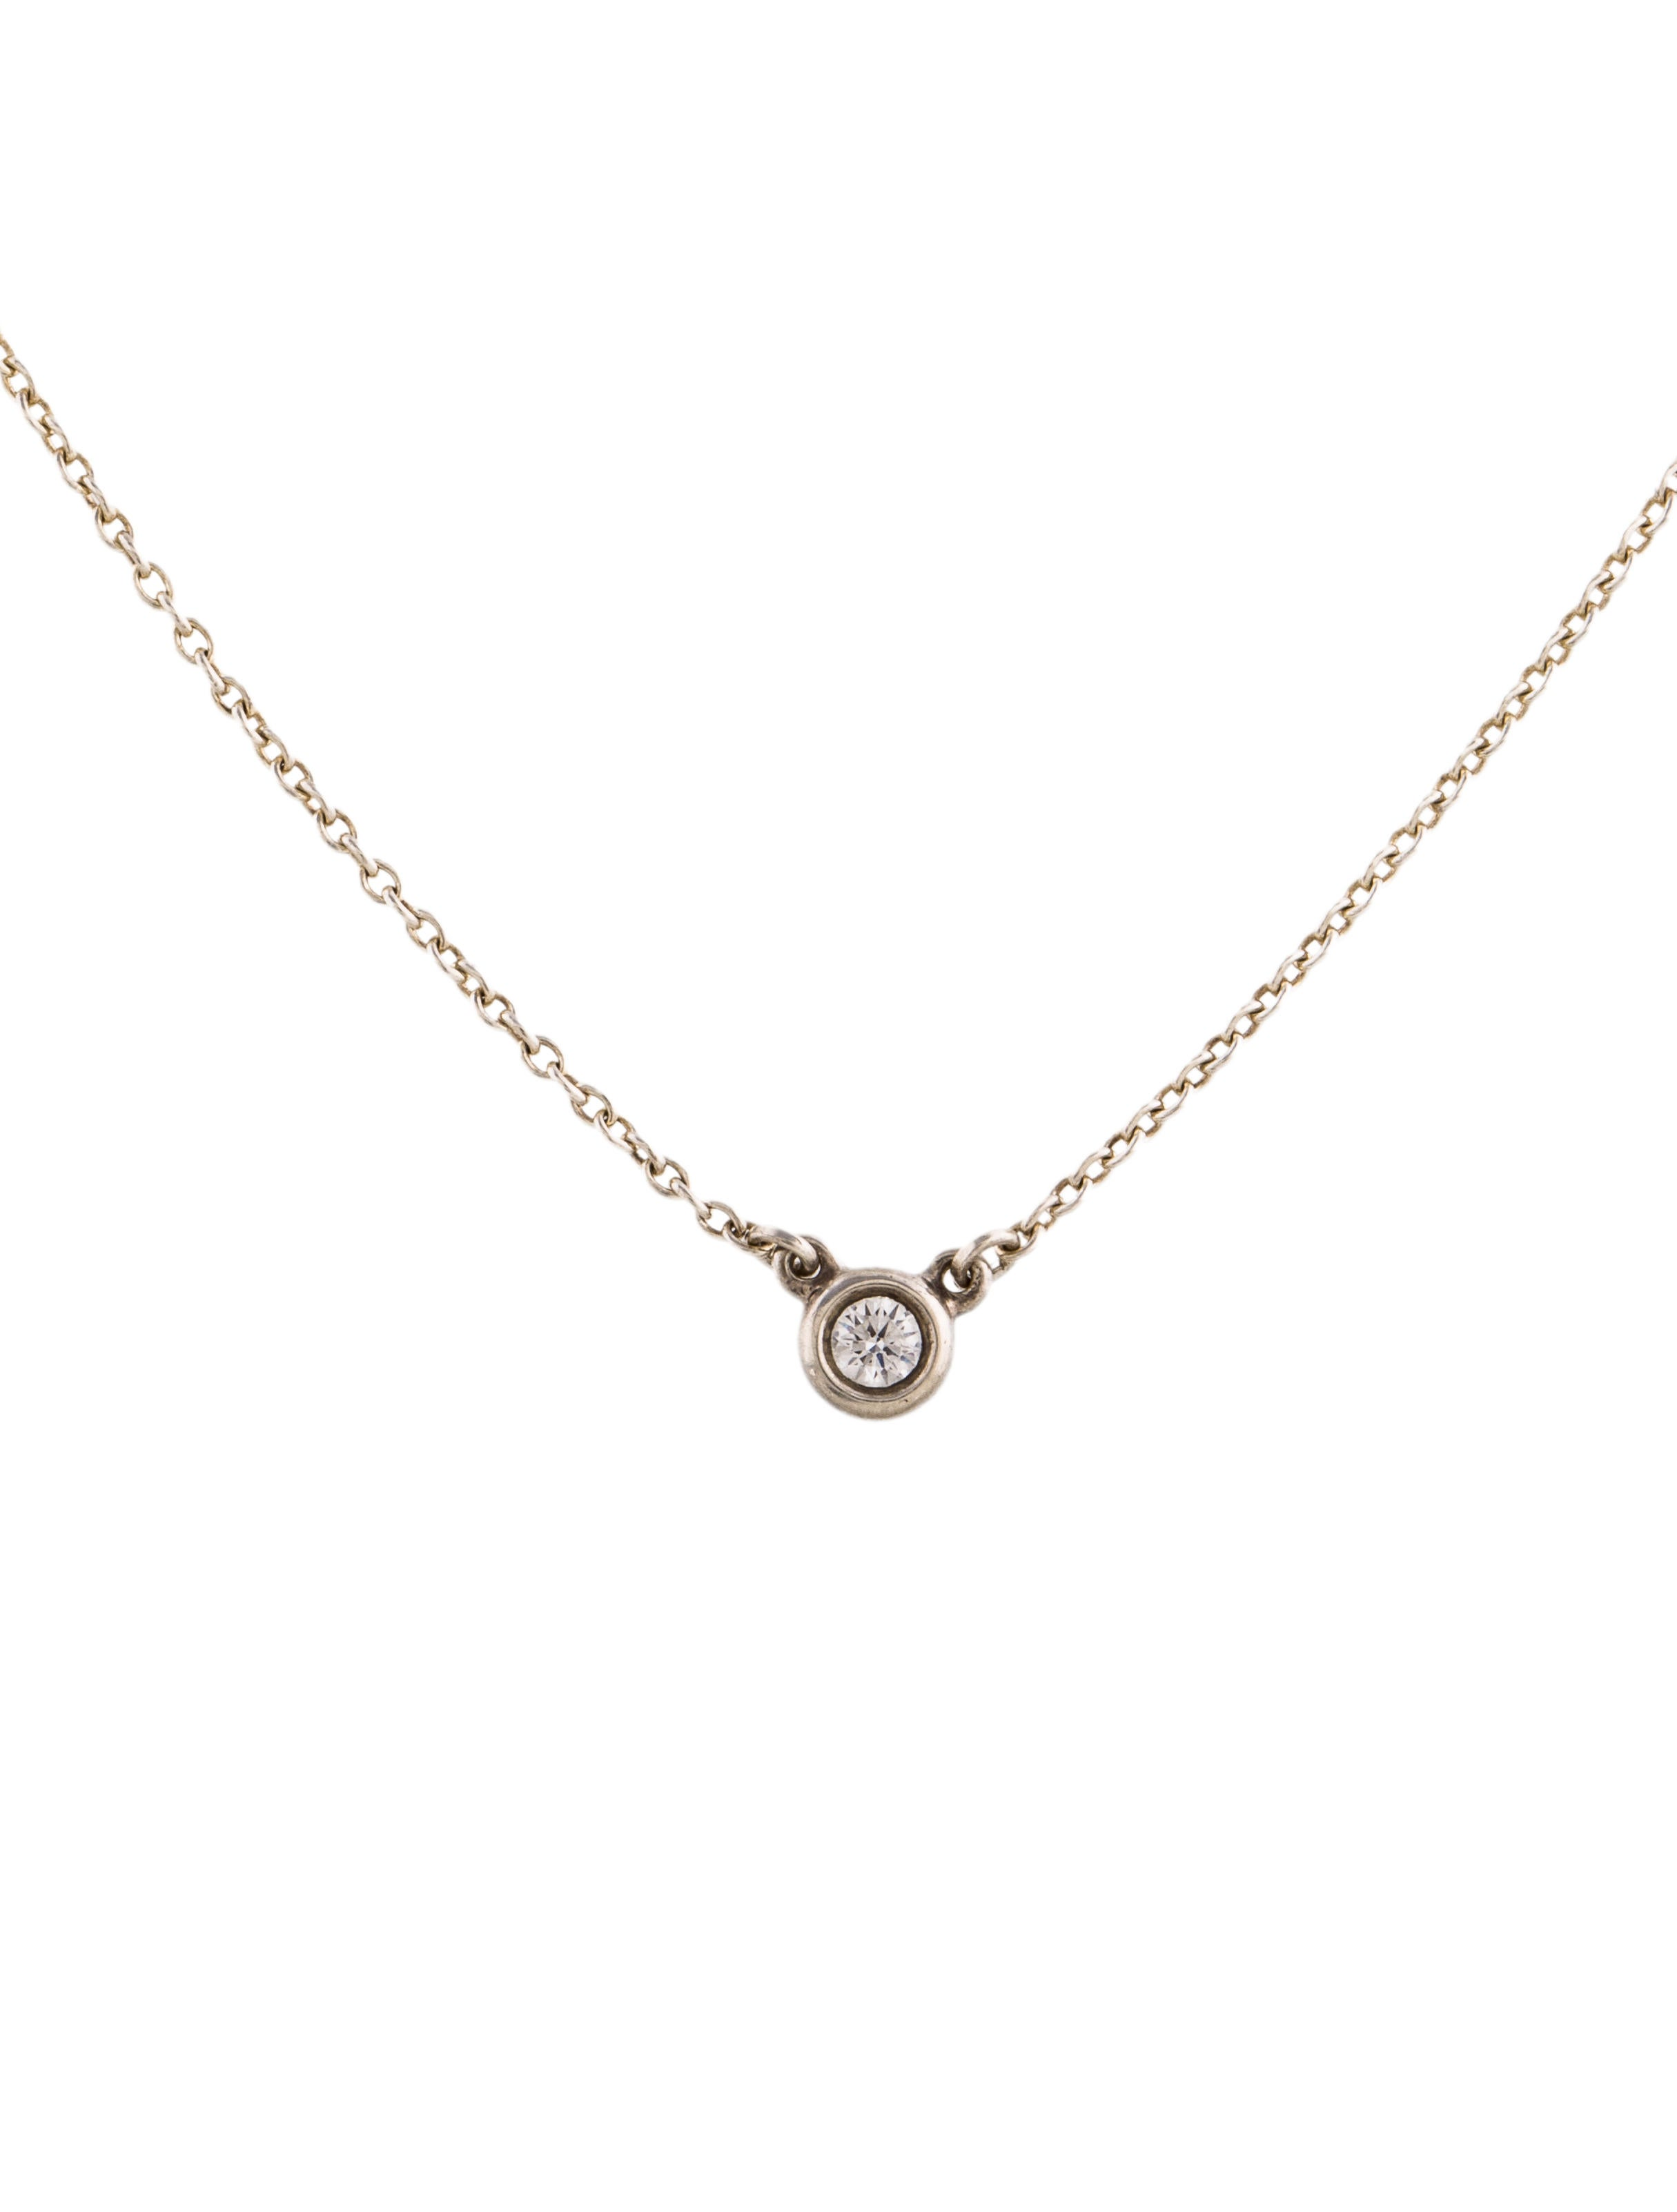 Tiffany co diamonds by the yard pendant necklace for Diamonds by the yard ring